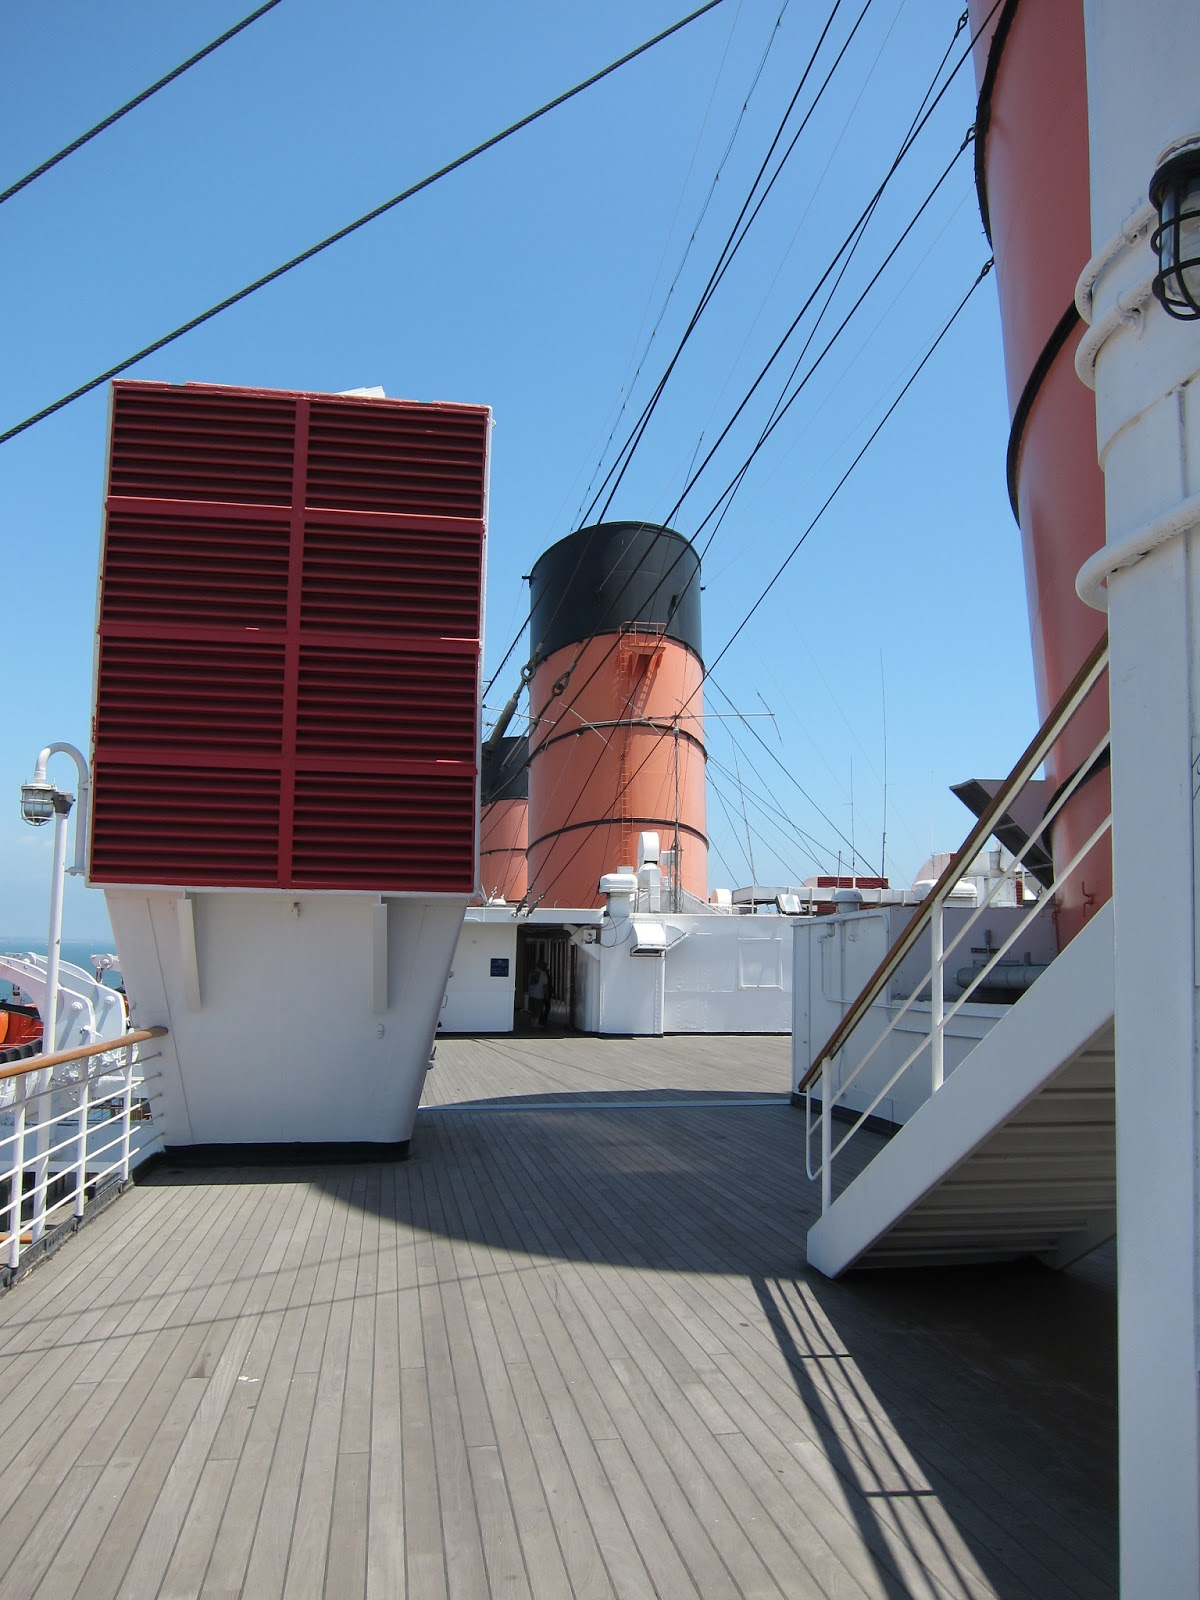 queen mary ship deck